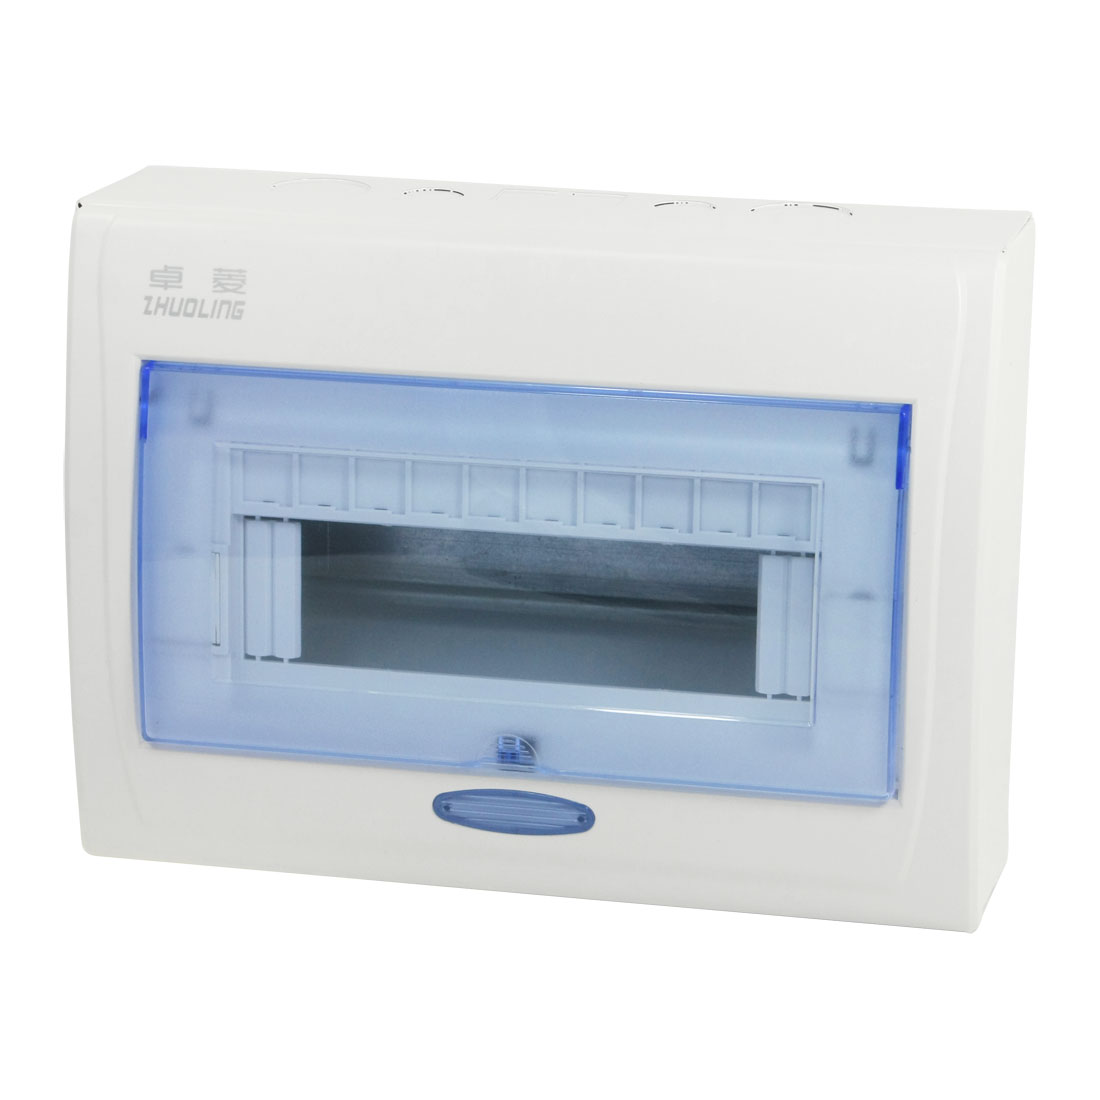 29cm-x-21cm-x-9cm-8-10-Way-Plastic-Window-Metallic-Distribution-Box-Switchboard